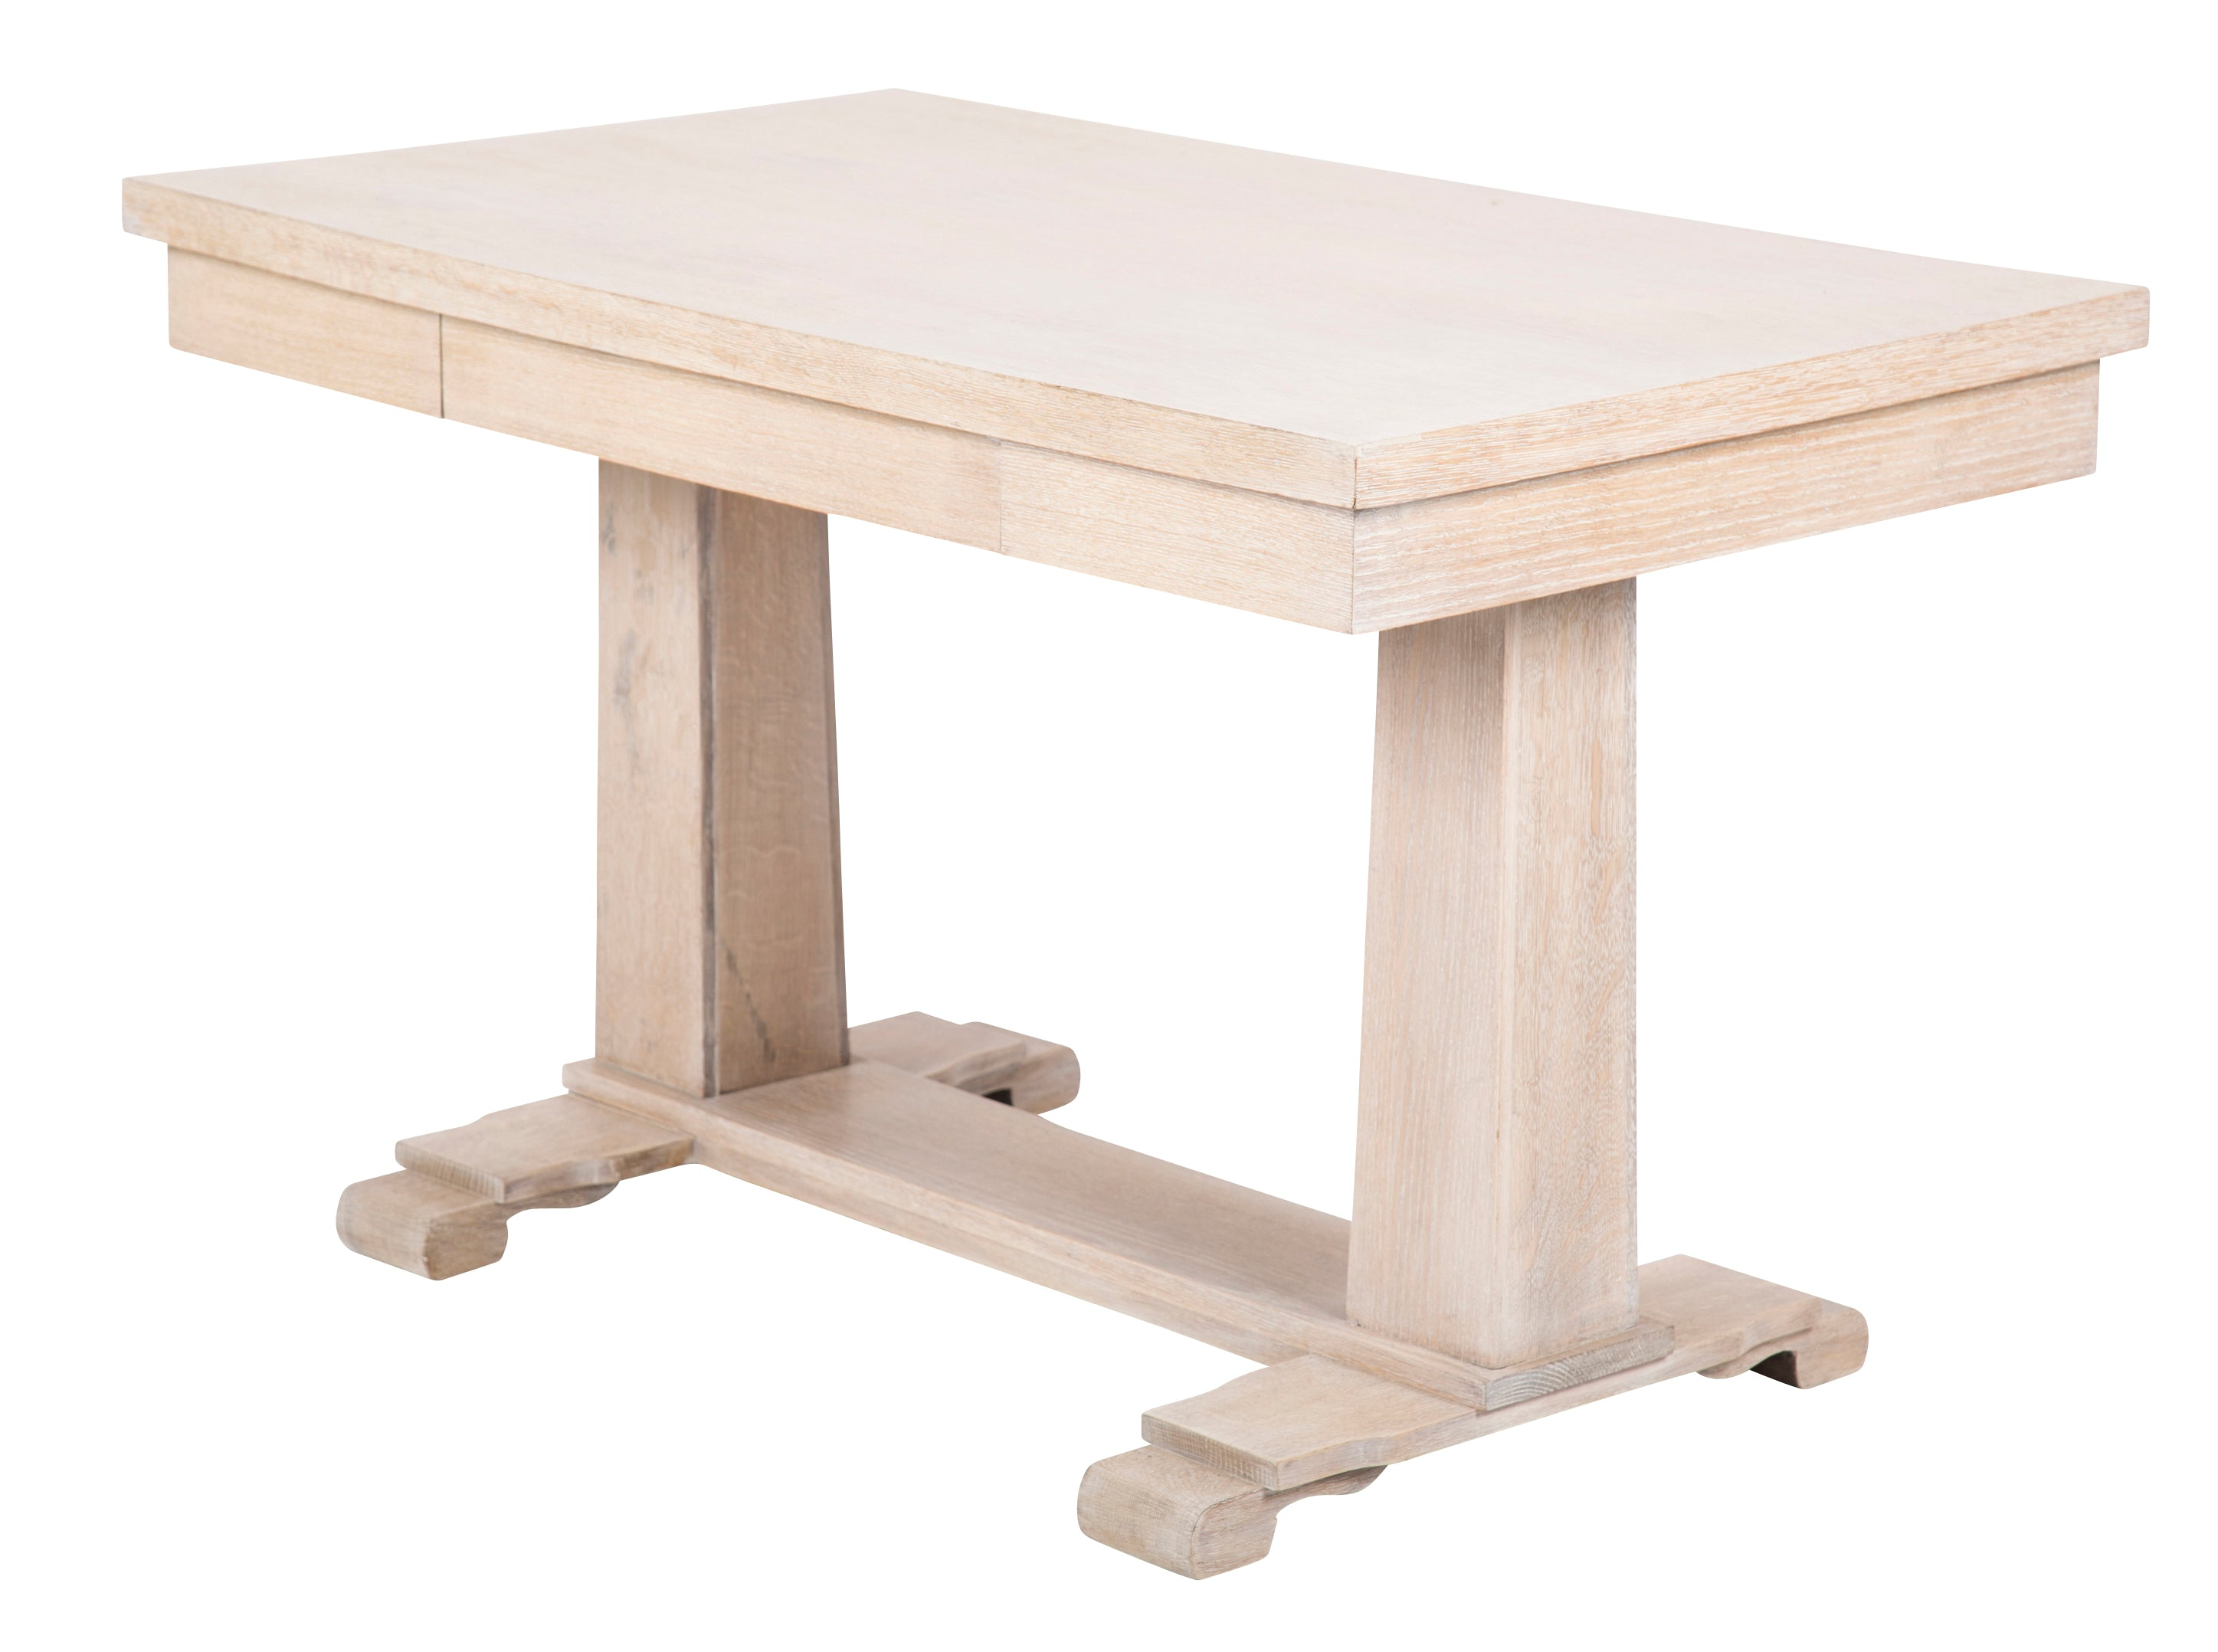 woodworking magazine projects plans librarytable table lead canadian library